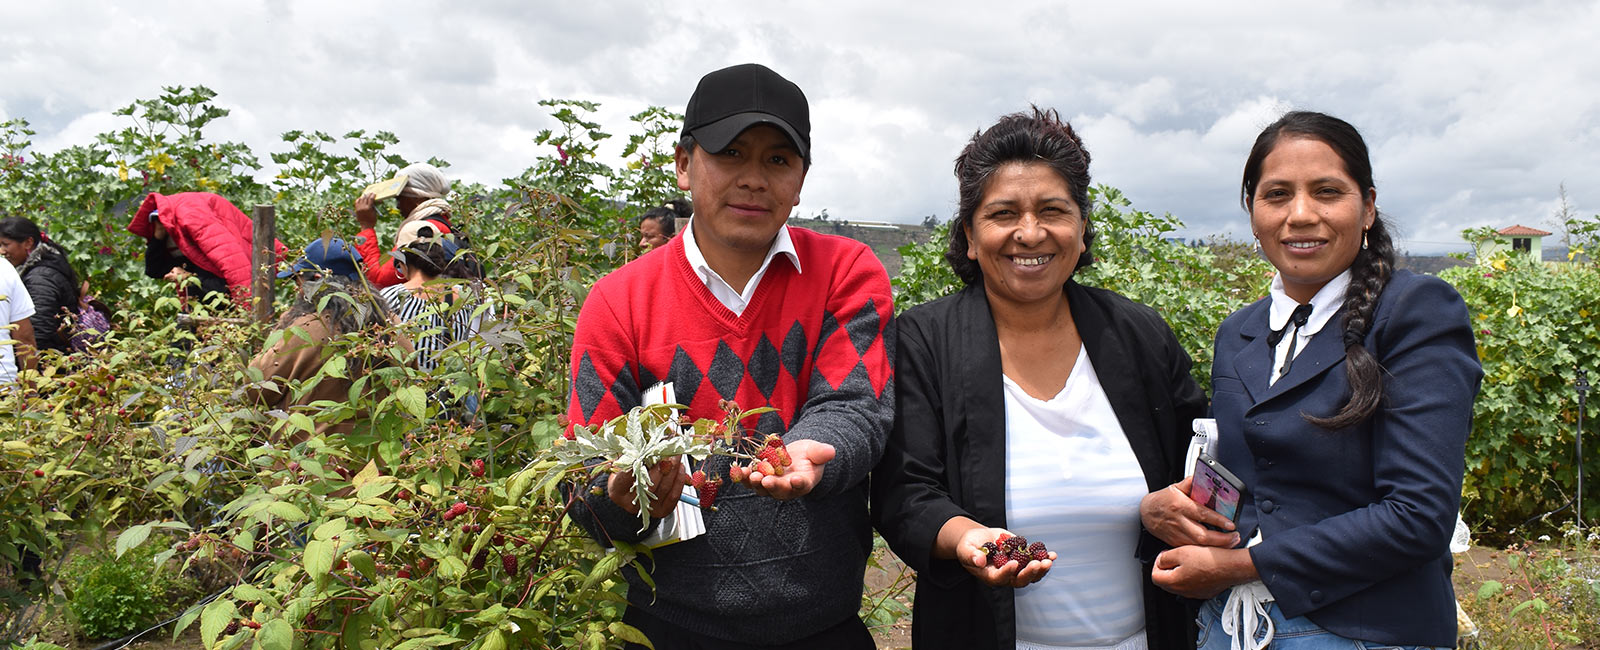 How Organic Agriculture is Transforming Lives in Ecuador